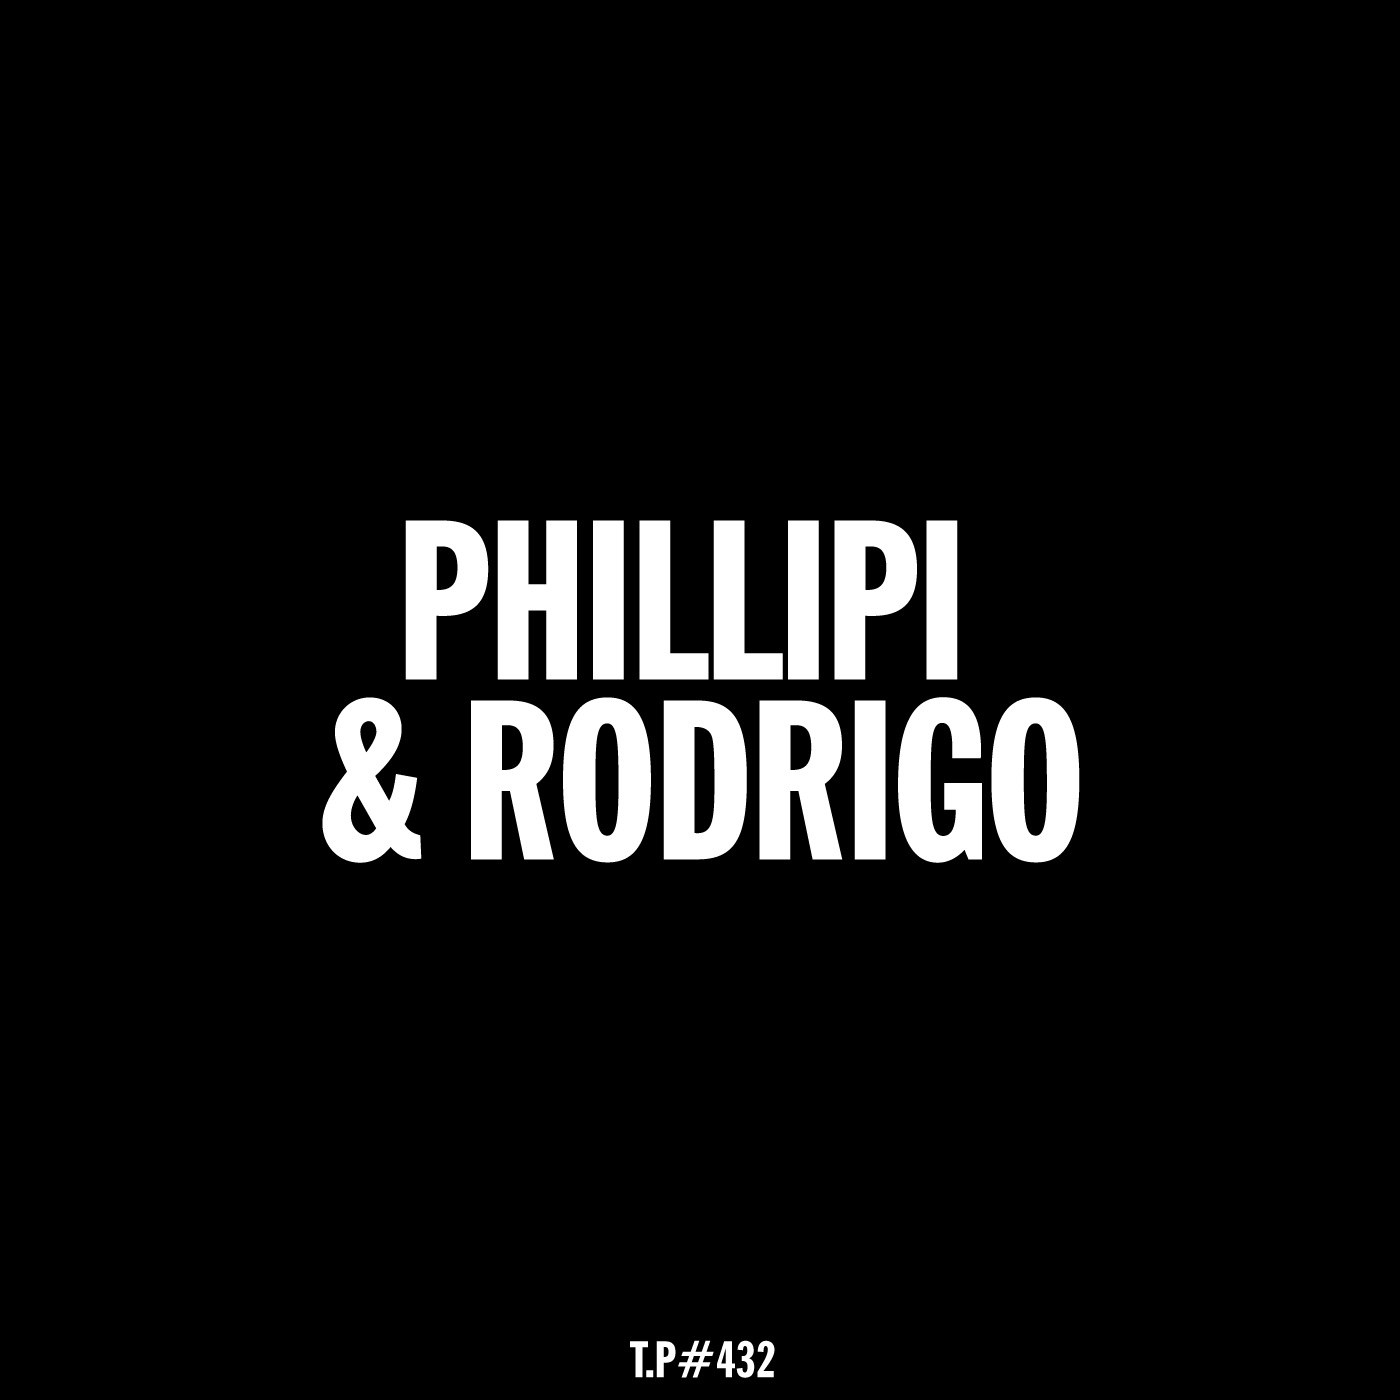 Phillipi & Rodrigo, Mixtape, Mix, DEEWEE, Test Pressing, Fatnotronic, Brazilian, Samba, Sound